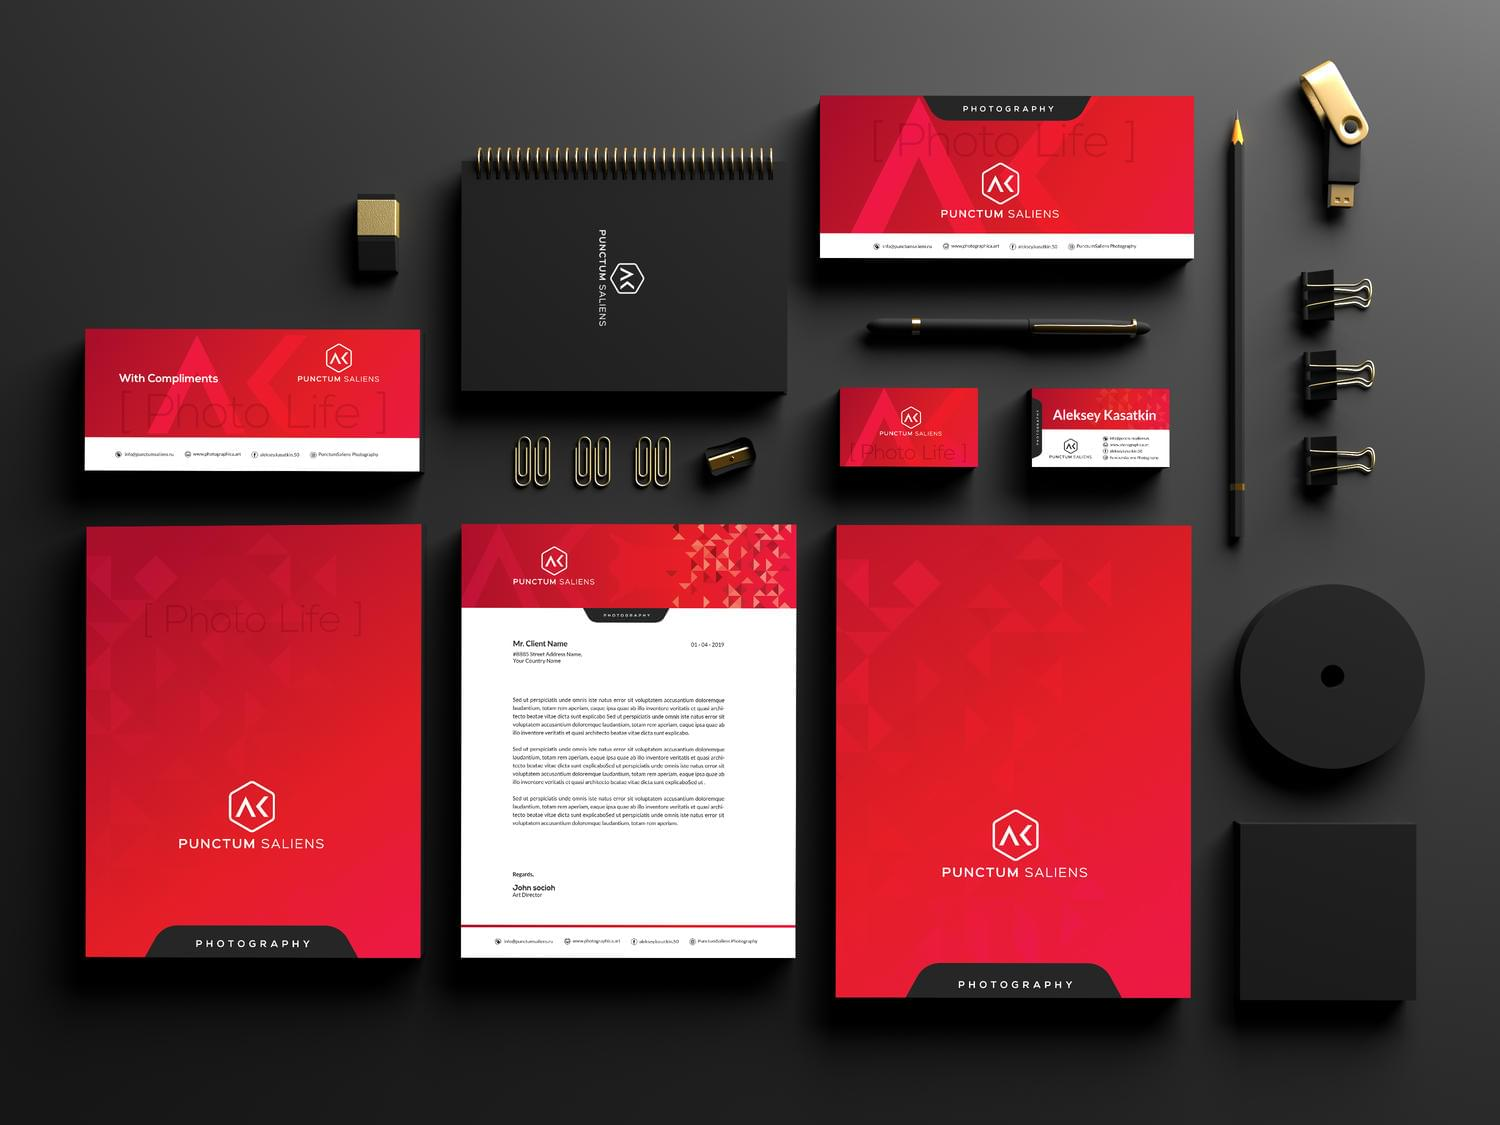 Stationery Design by -axnorpix - 115168